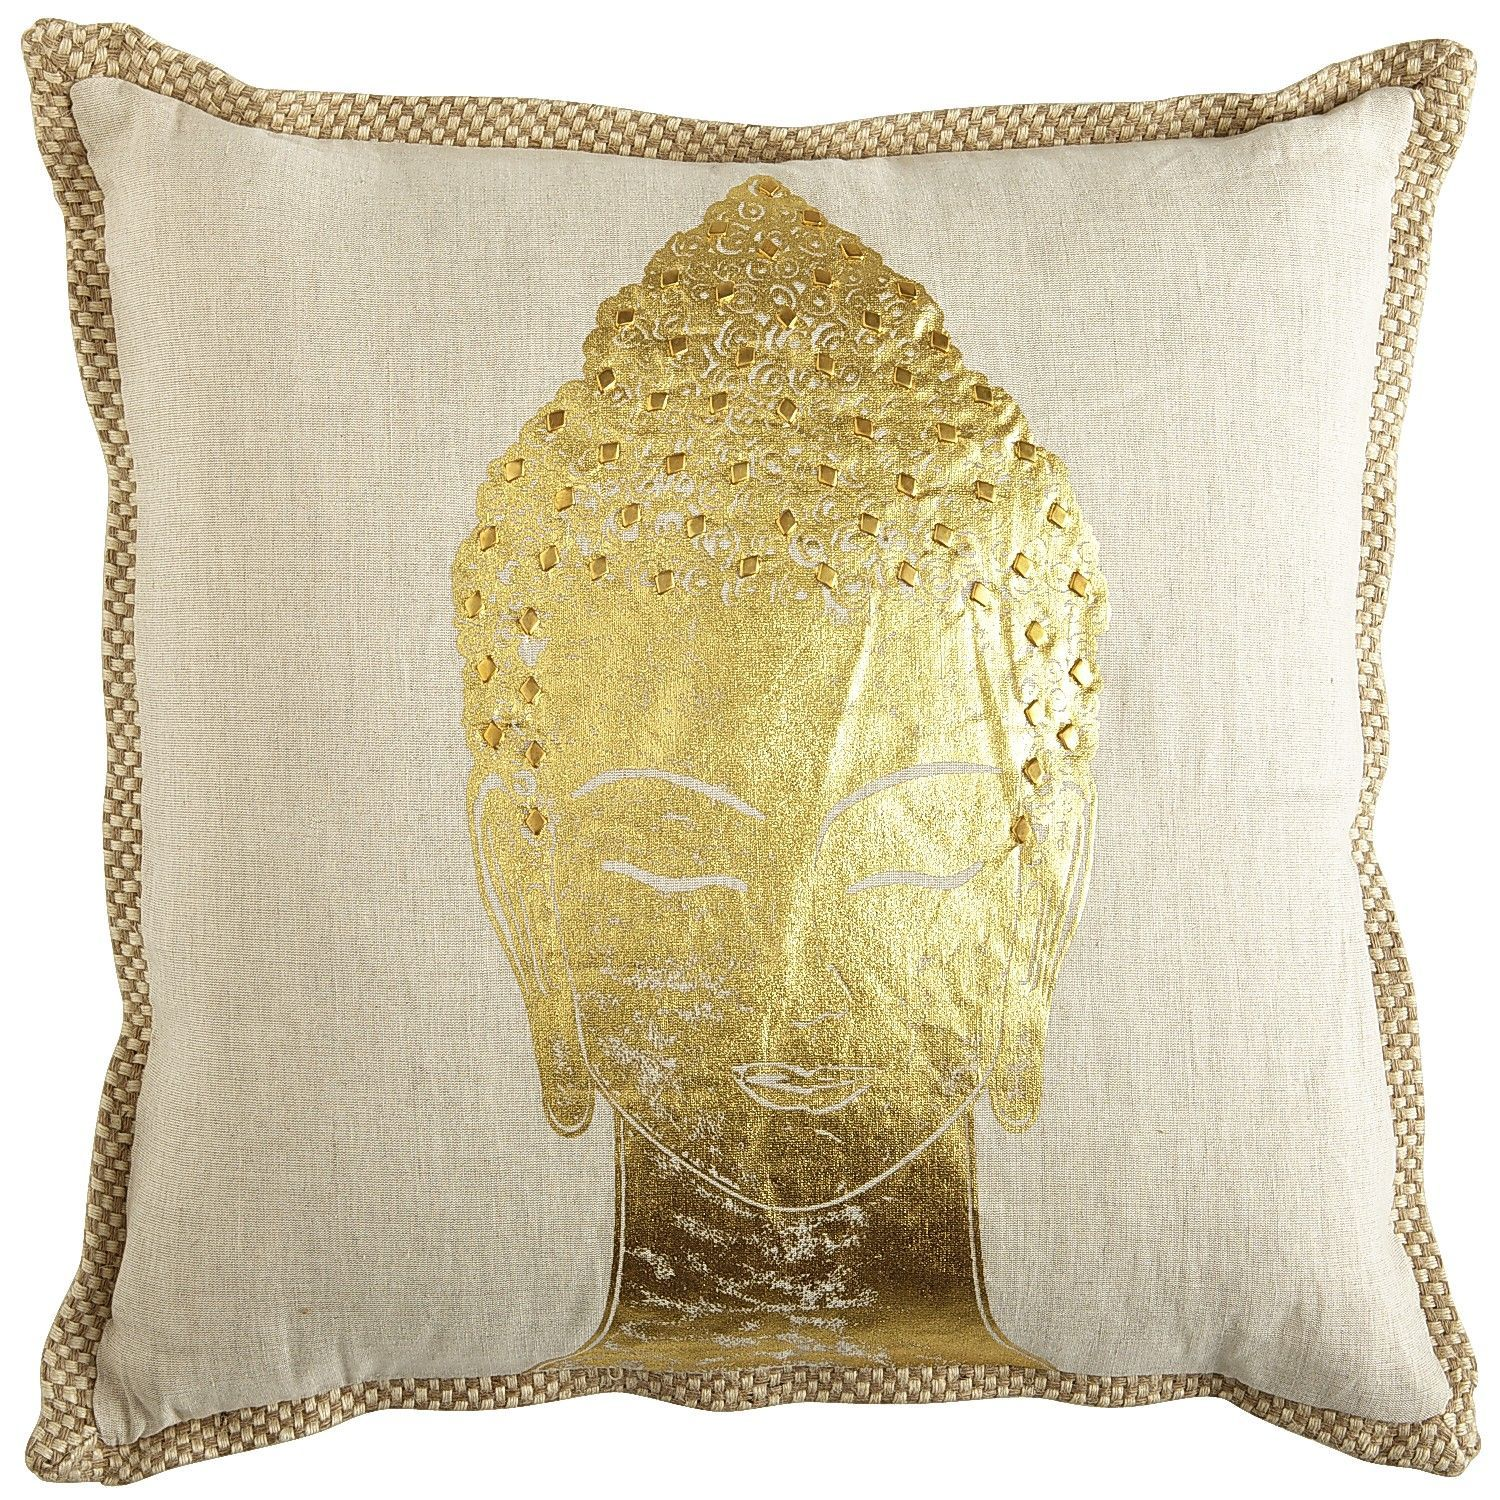 Capri Buddha Pillow Pier 1 Imports Kind Of Really Need This